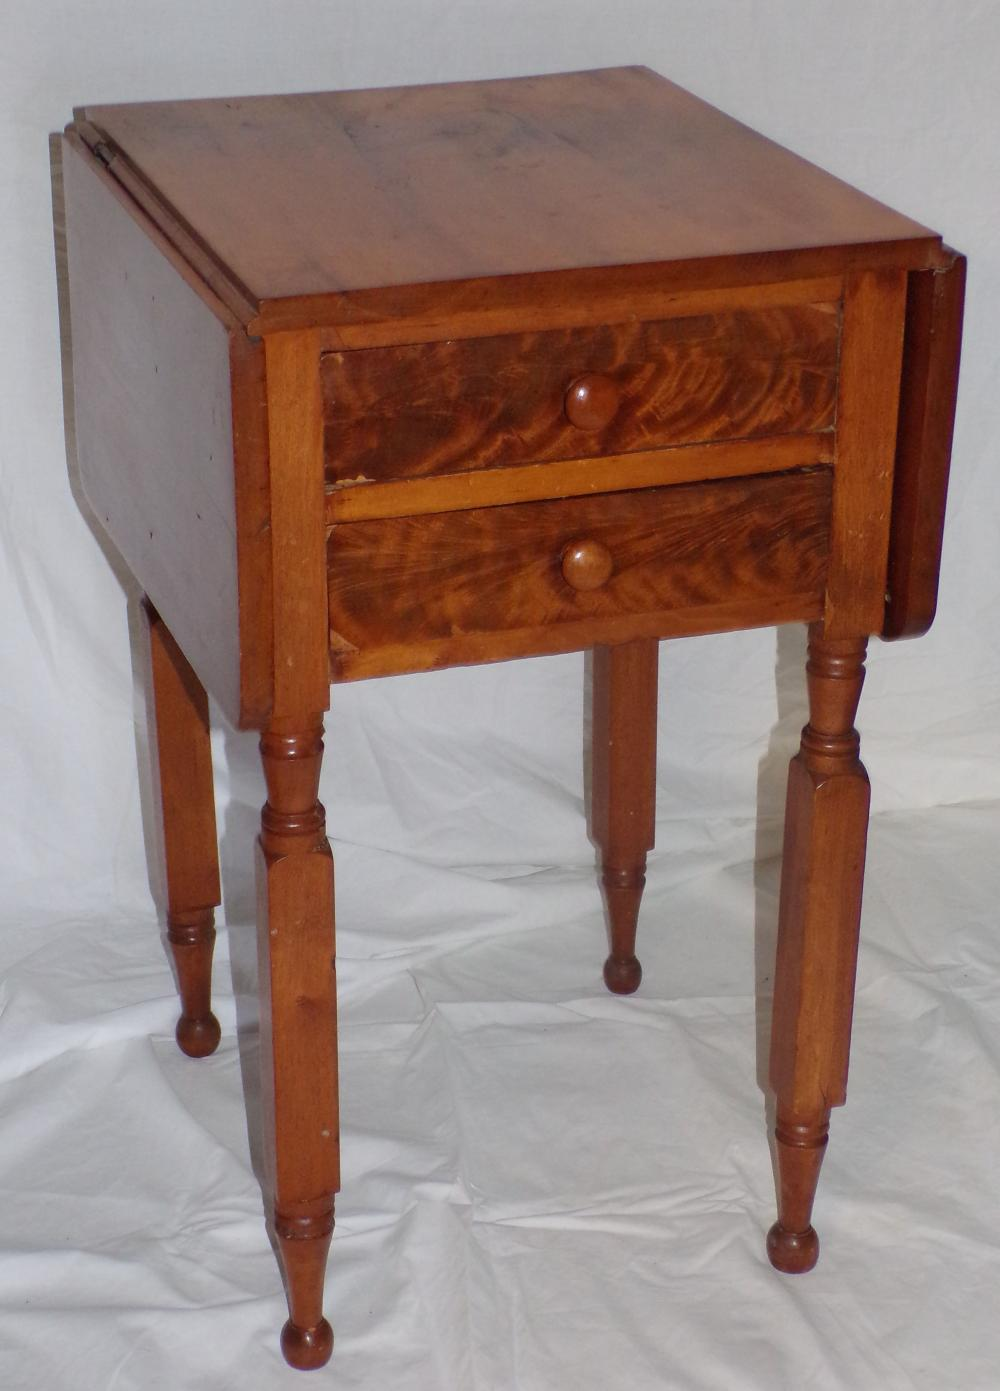 19th C Cherry Drop Leaf Work Table w/2 Drawers